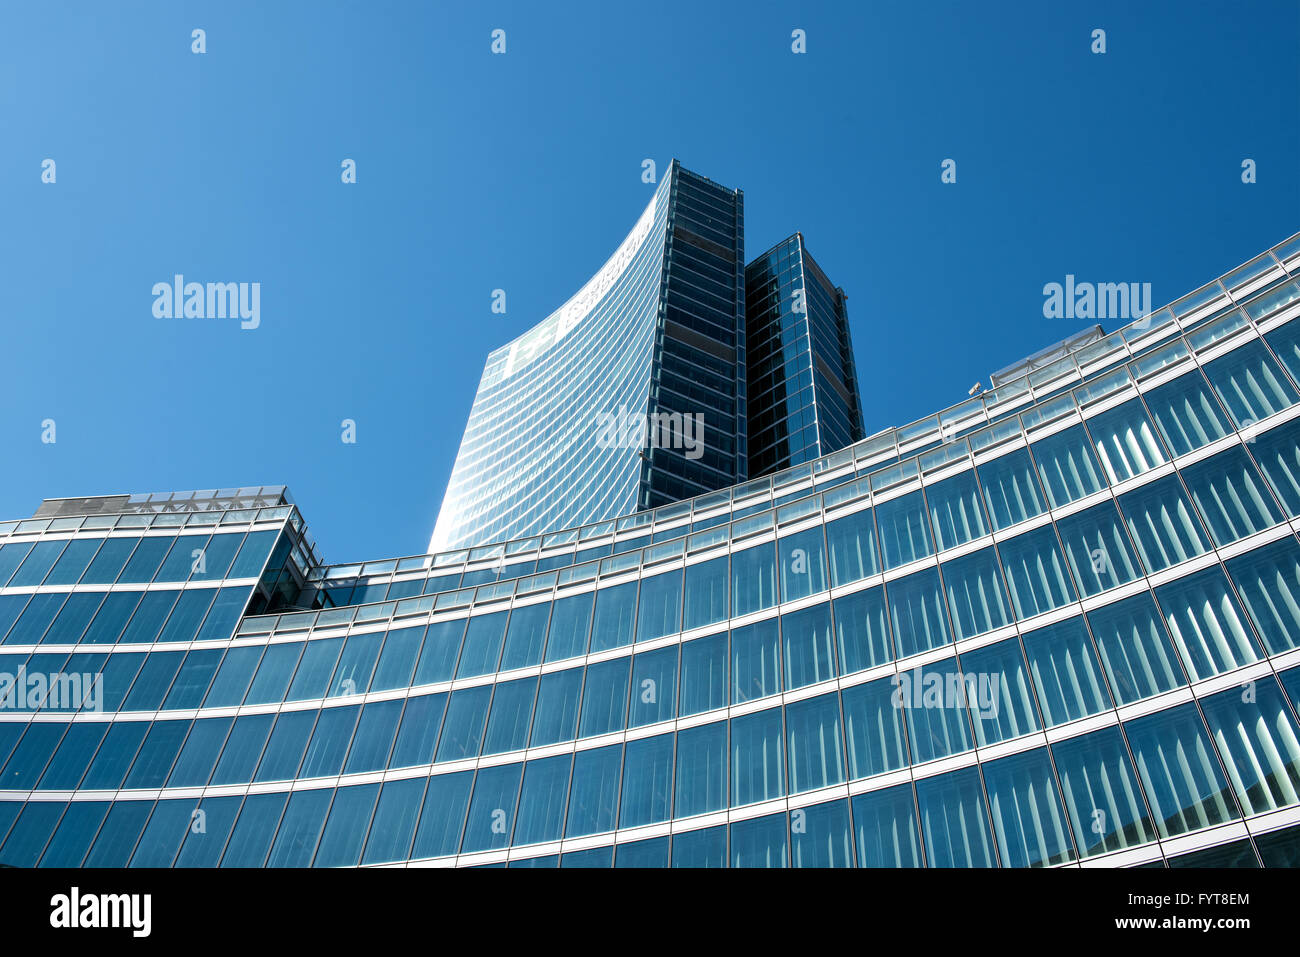 Beautiful modern glass and steel Palace of the regional Council of Lombardy building in Milan, Italy, Europe - Stock Image